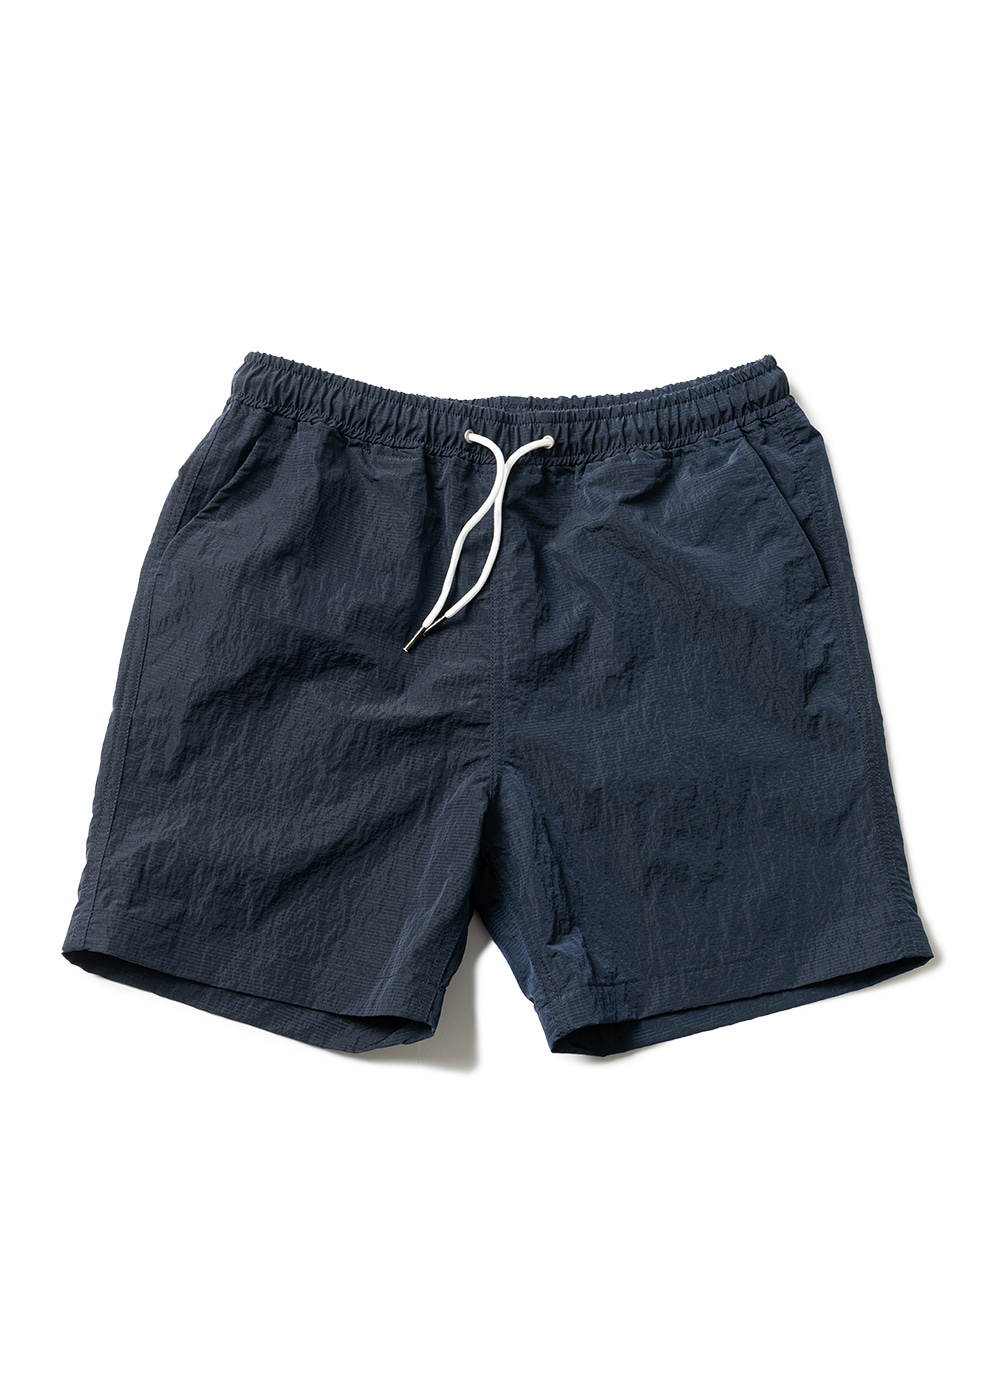 NYLON METAL SHORT PANTS MUZSP004-NV